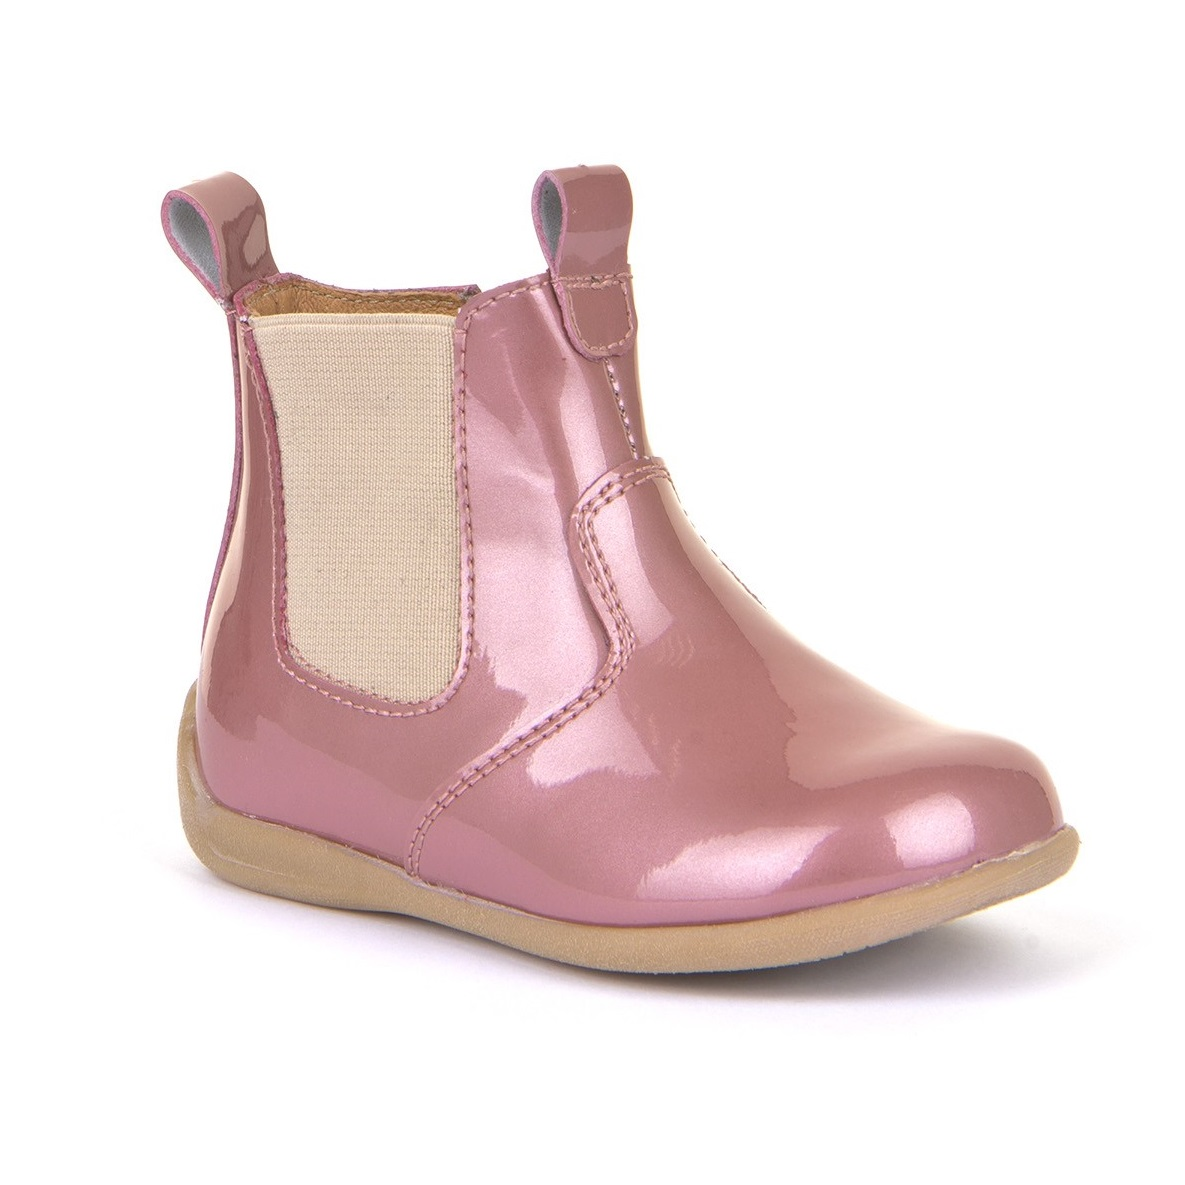 FRODDO Pink Patent Chelsea Boots G2160054